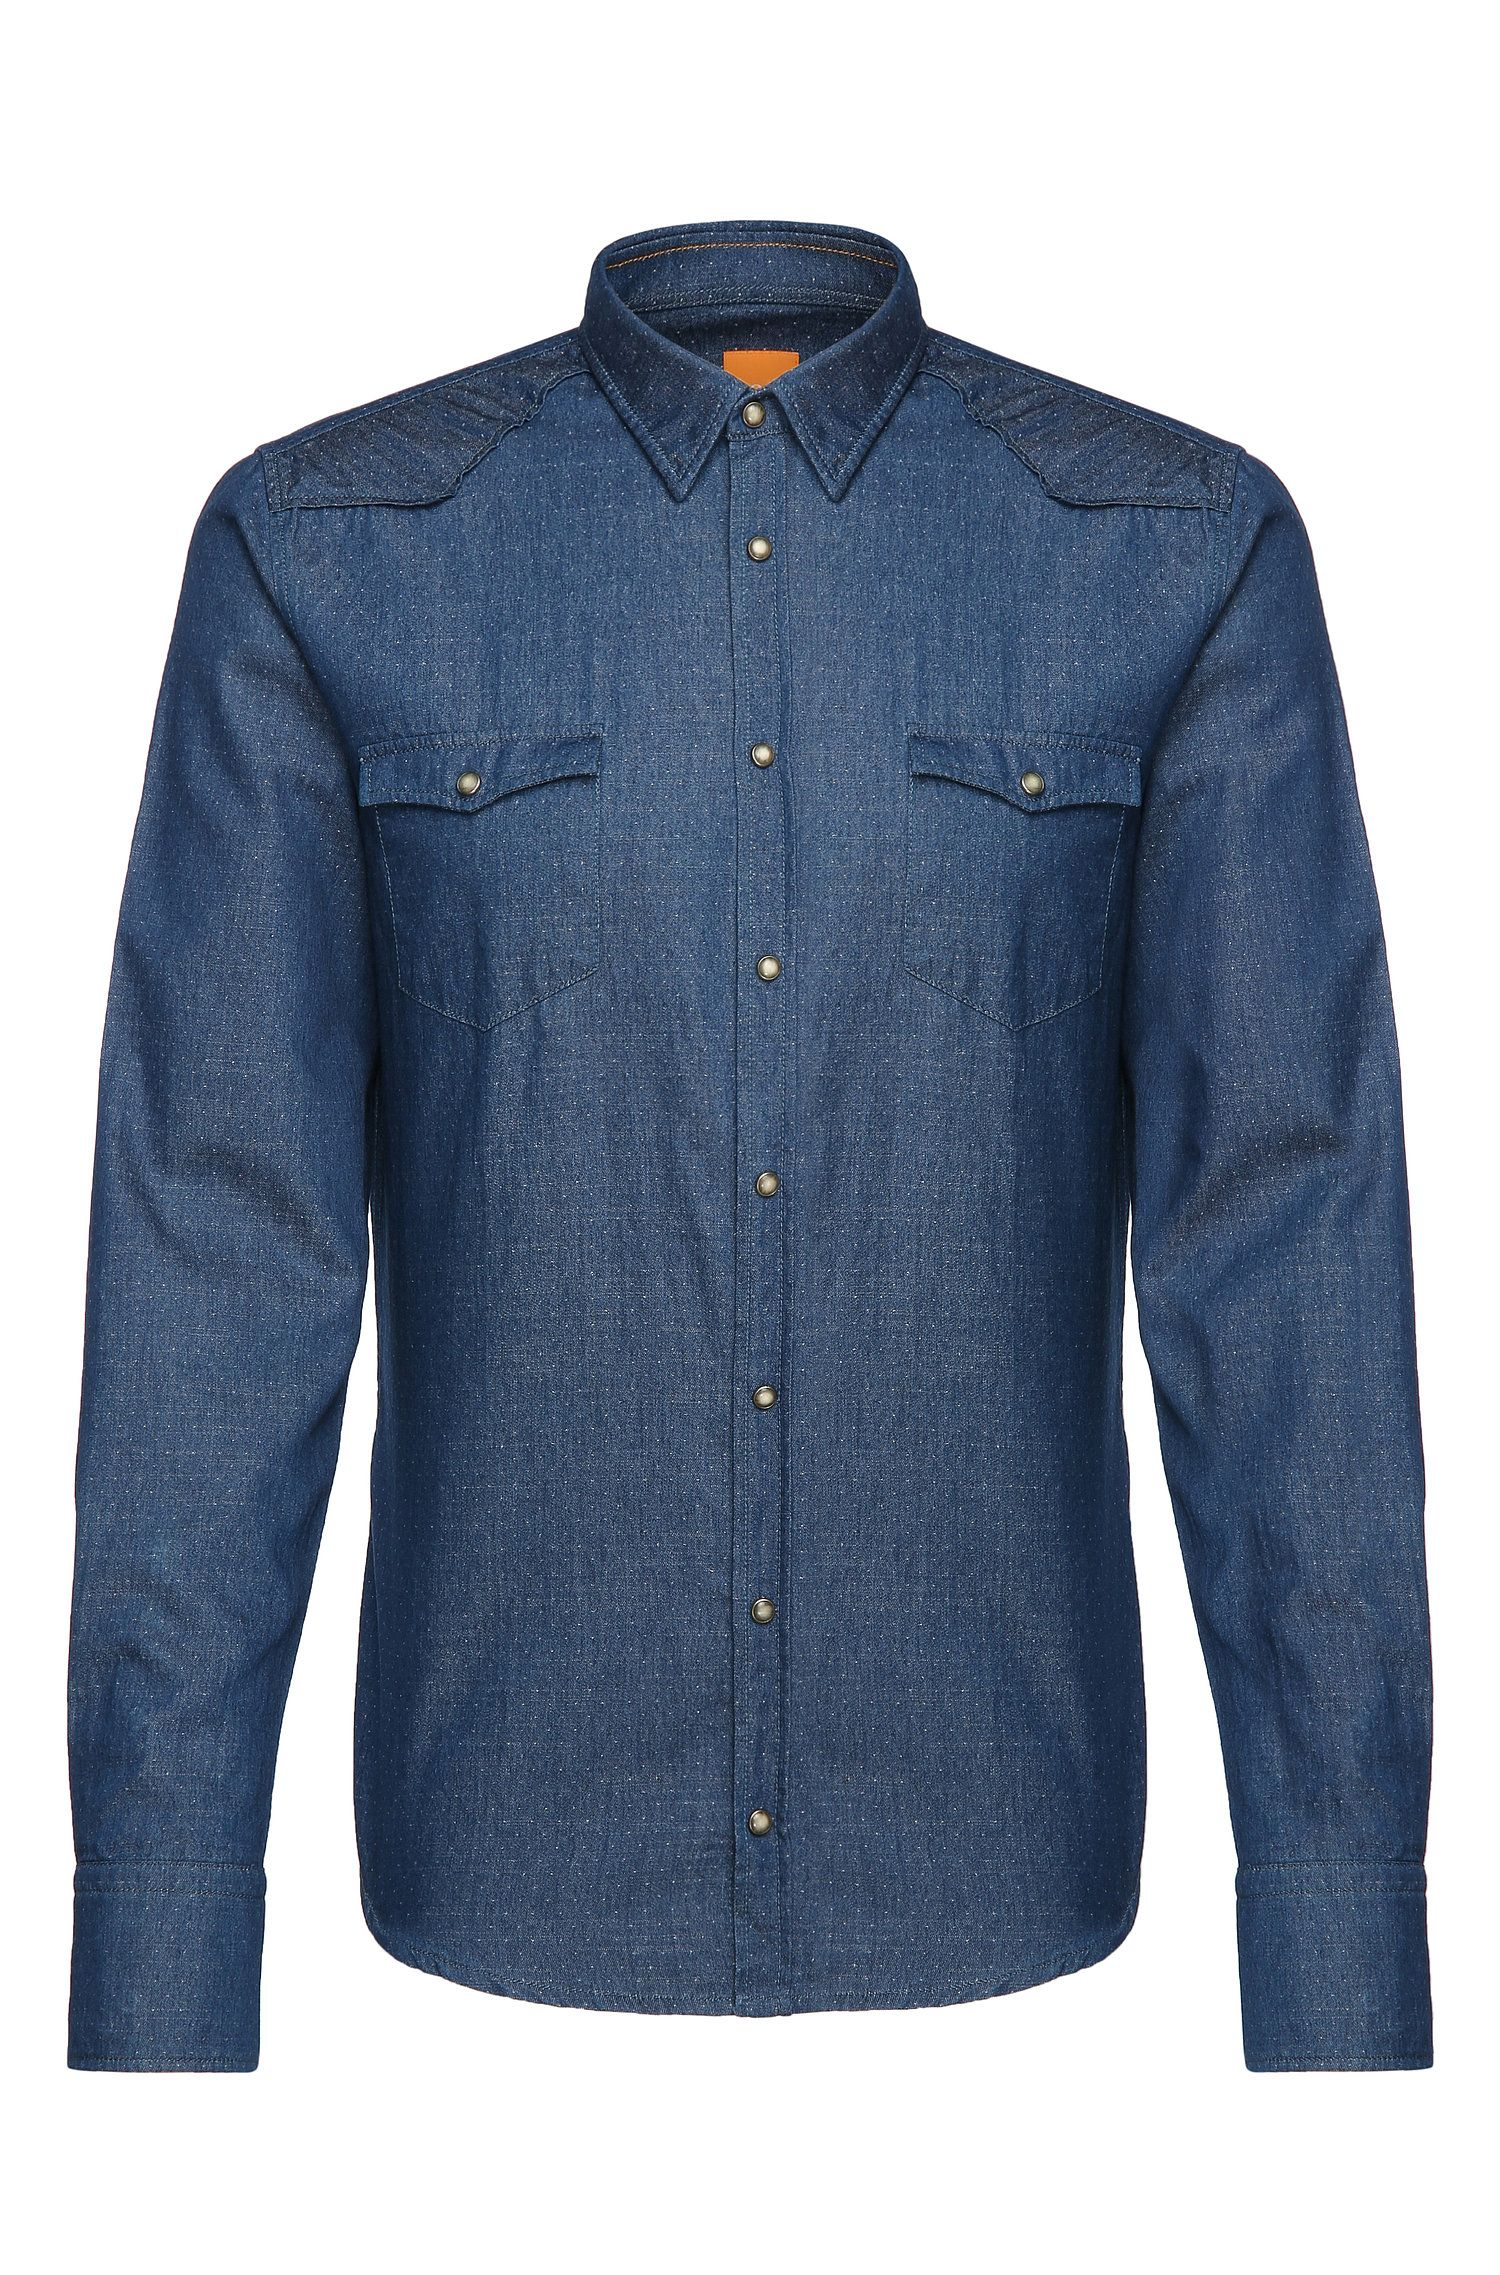 Polka dot pattern slim-fit jeans shirt in cotton: 'Erodeo'